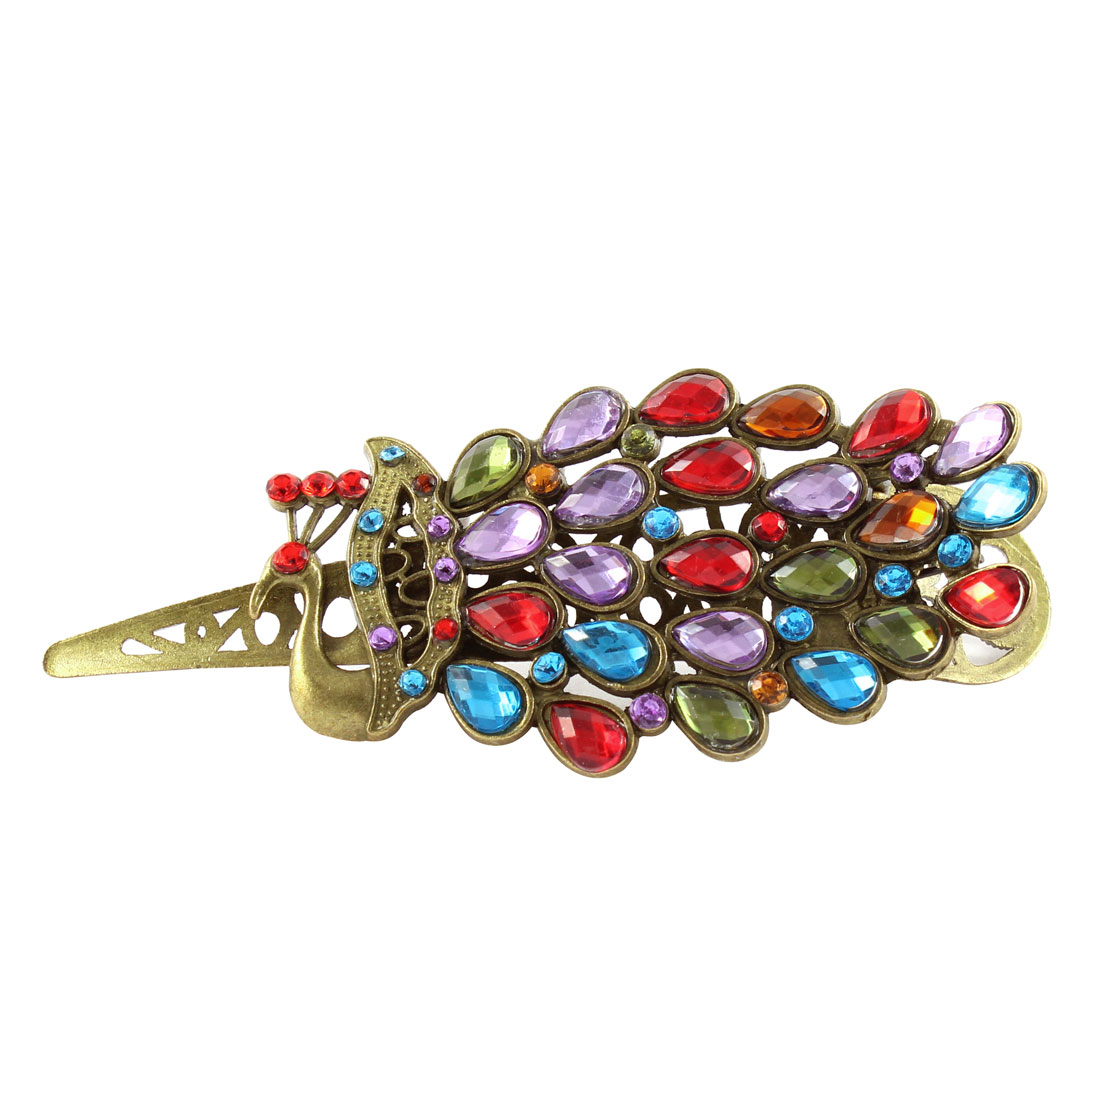 Peacock Design Glittering Hair Clip Hairpin Barrette Claw Gift